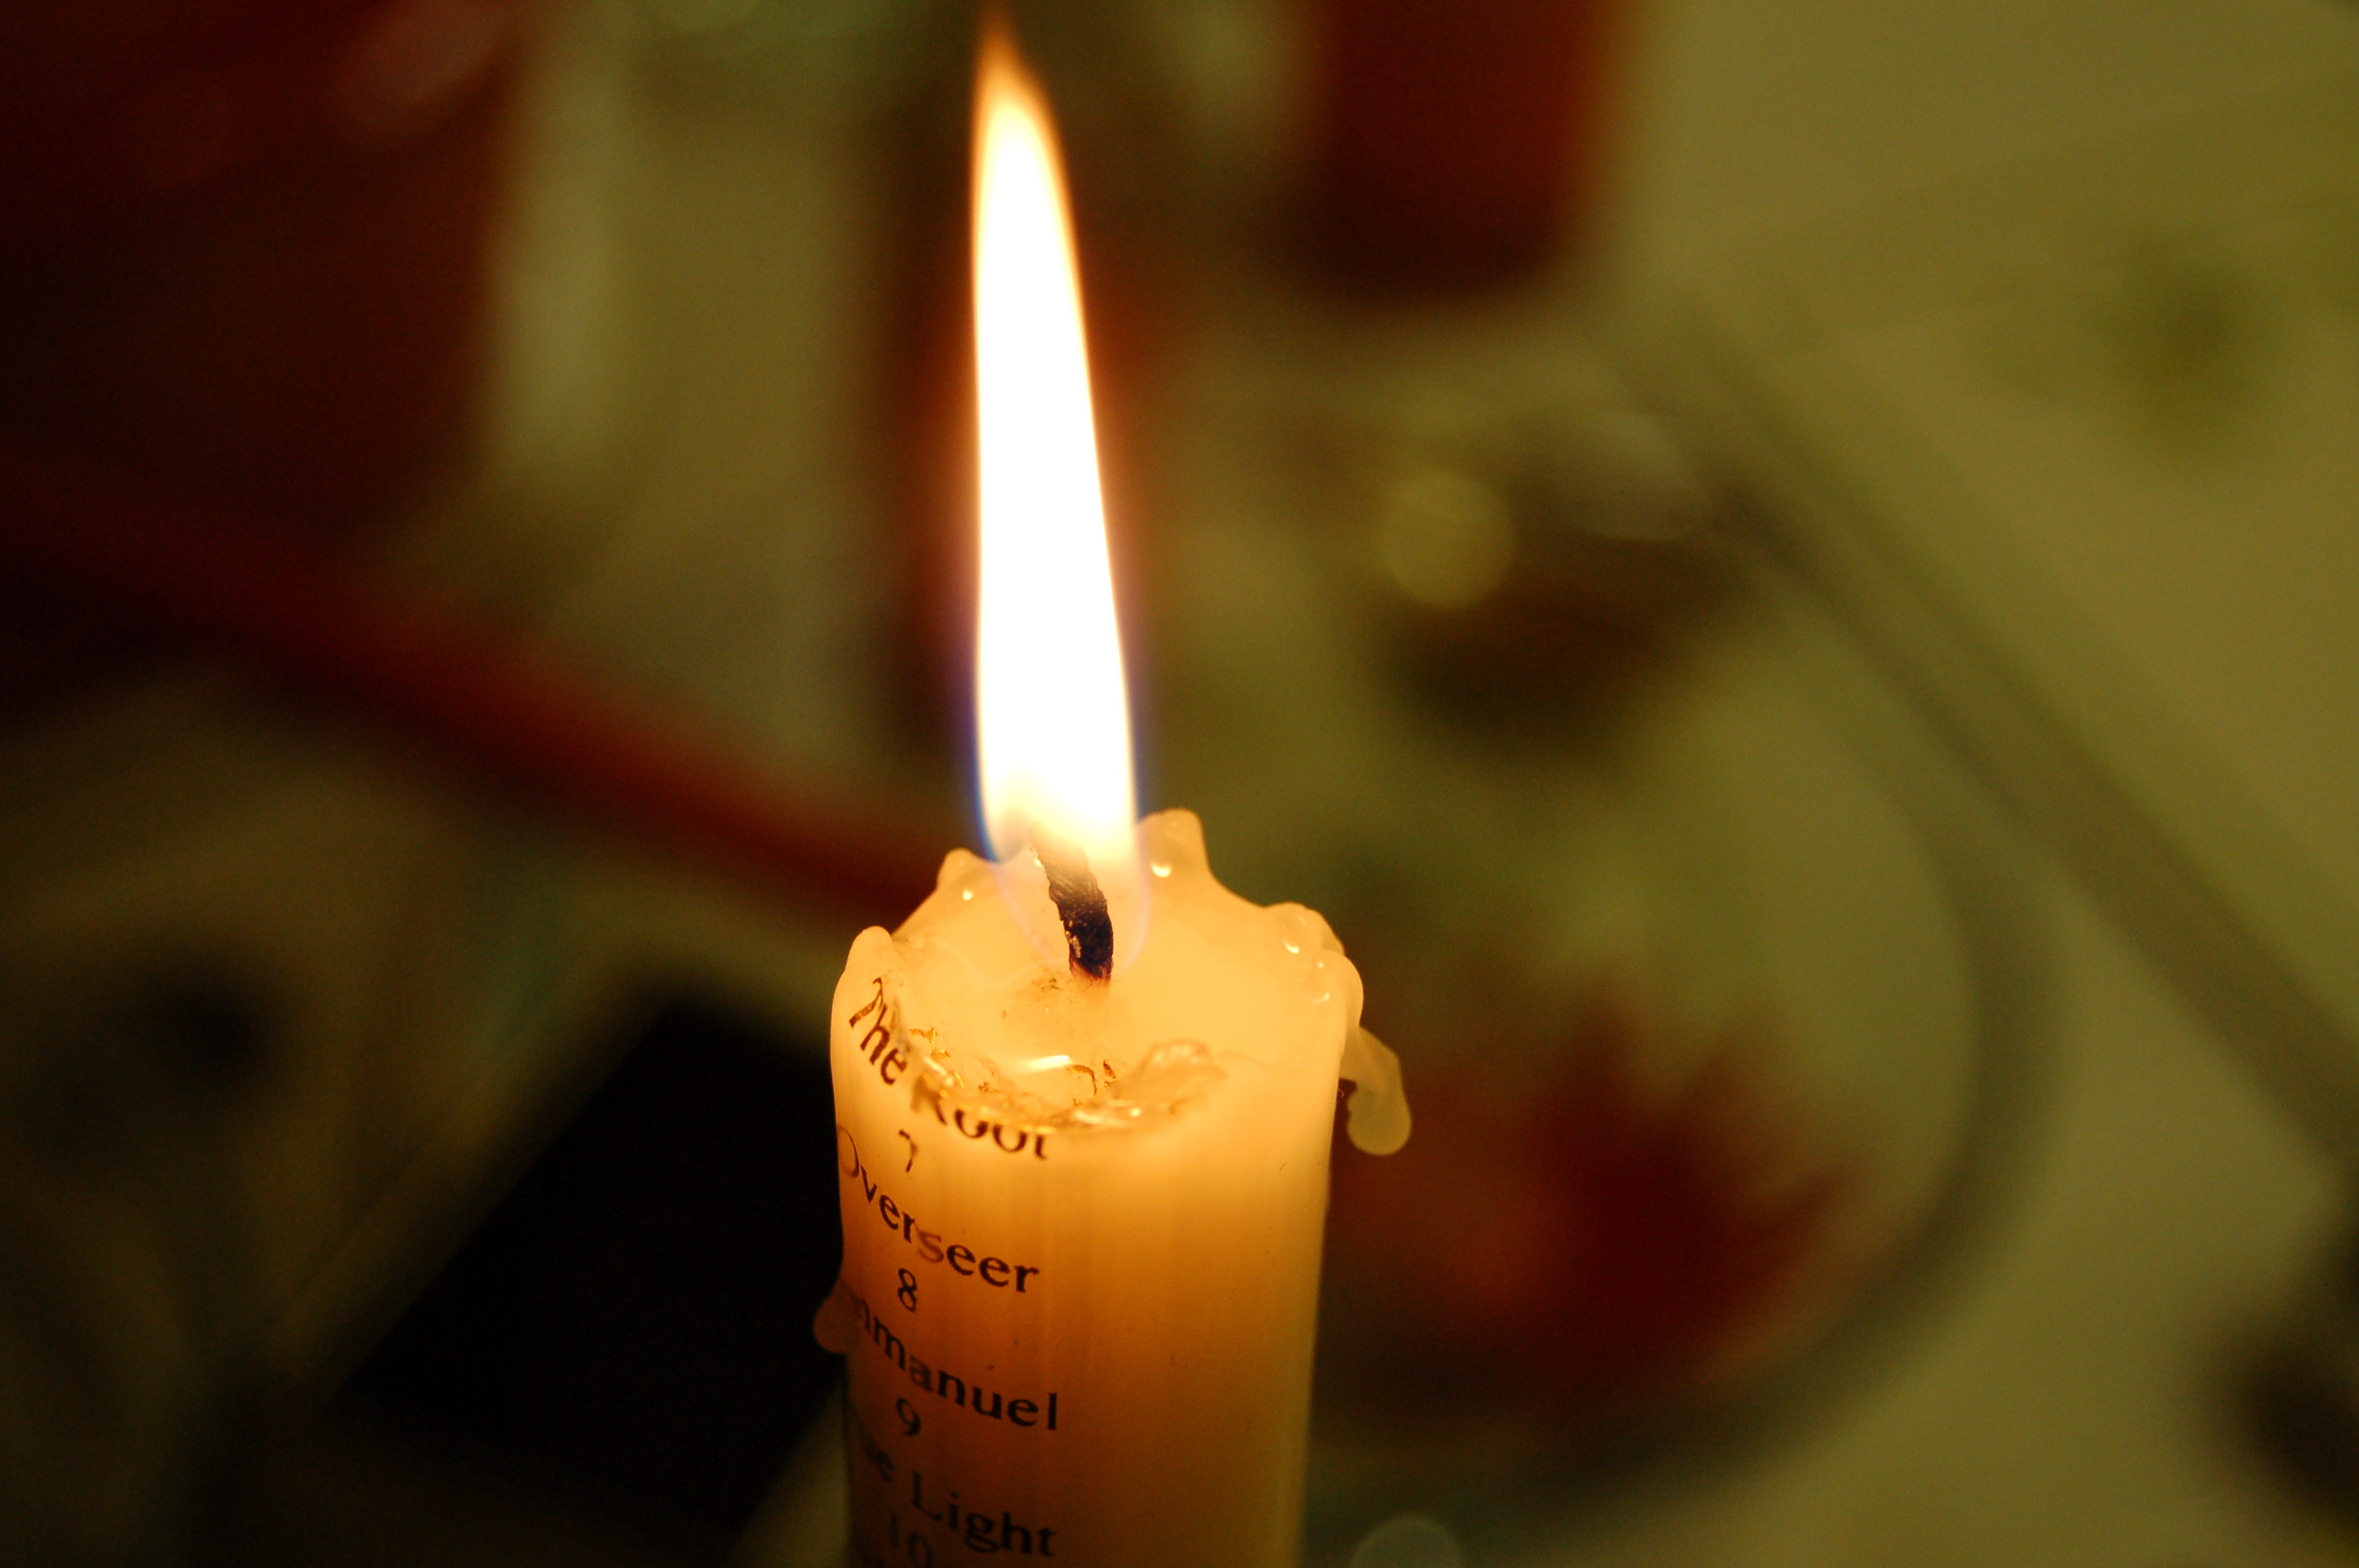 The First Week of Advent: The Hope Candle